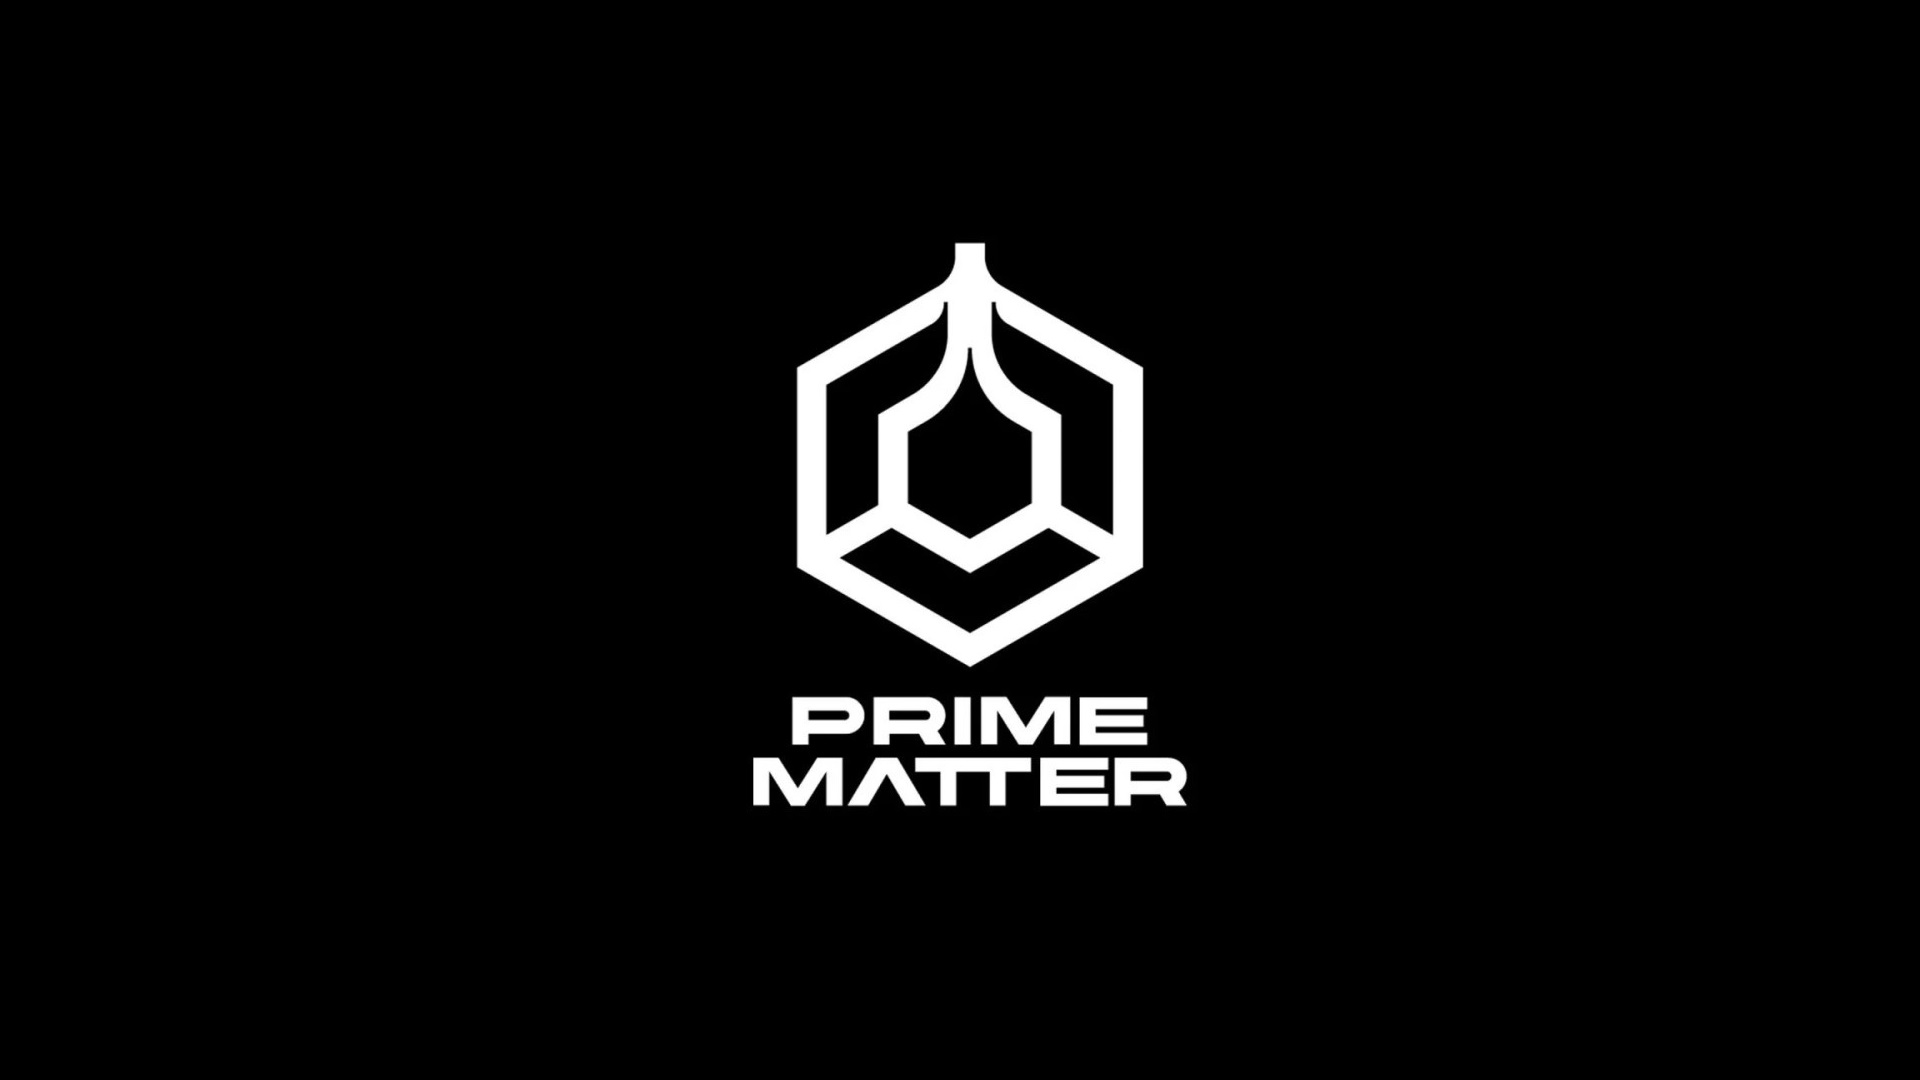 Prime Matter: Koch Media presents label with new announcements